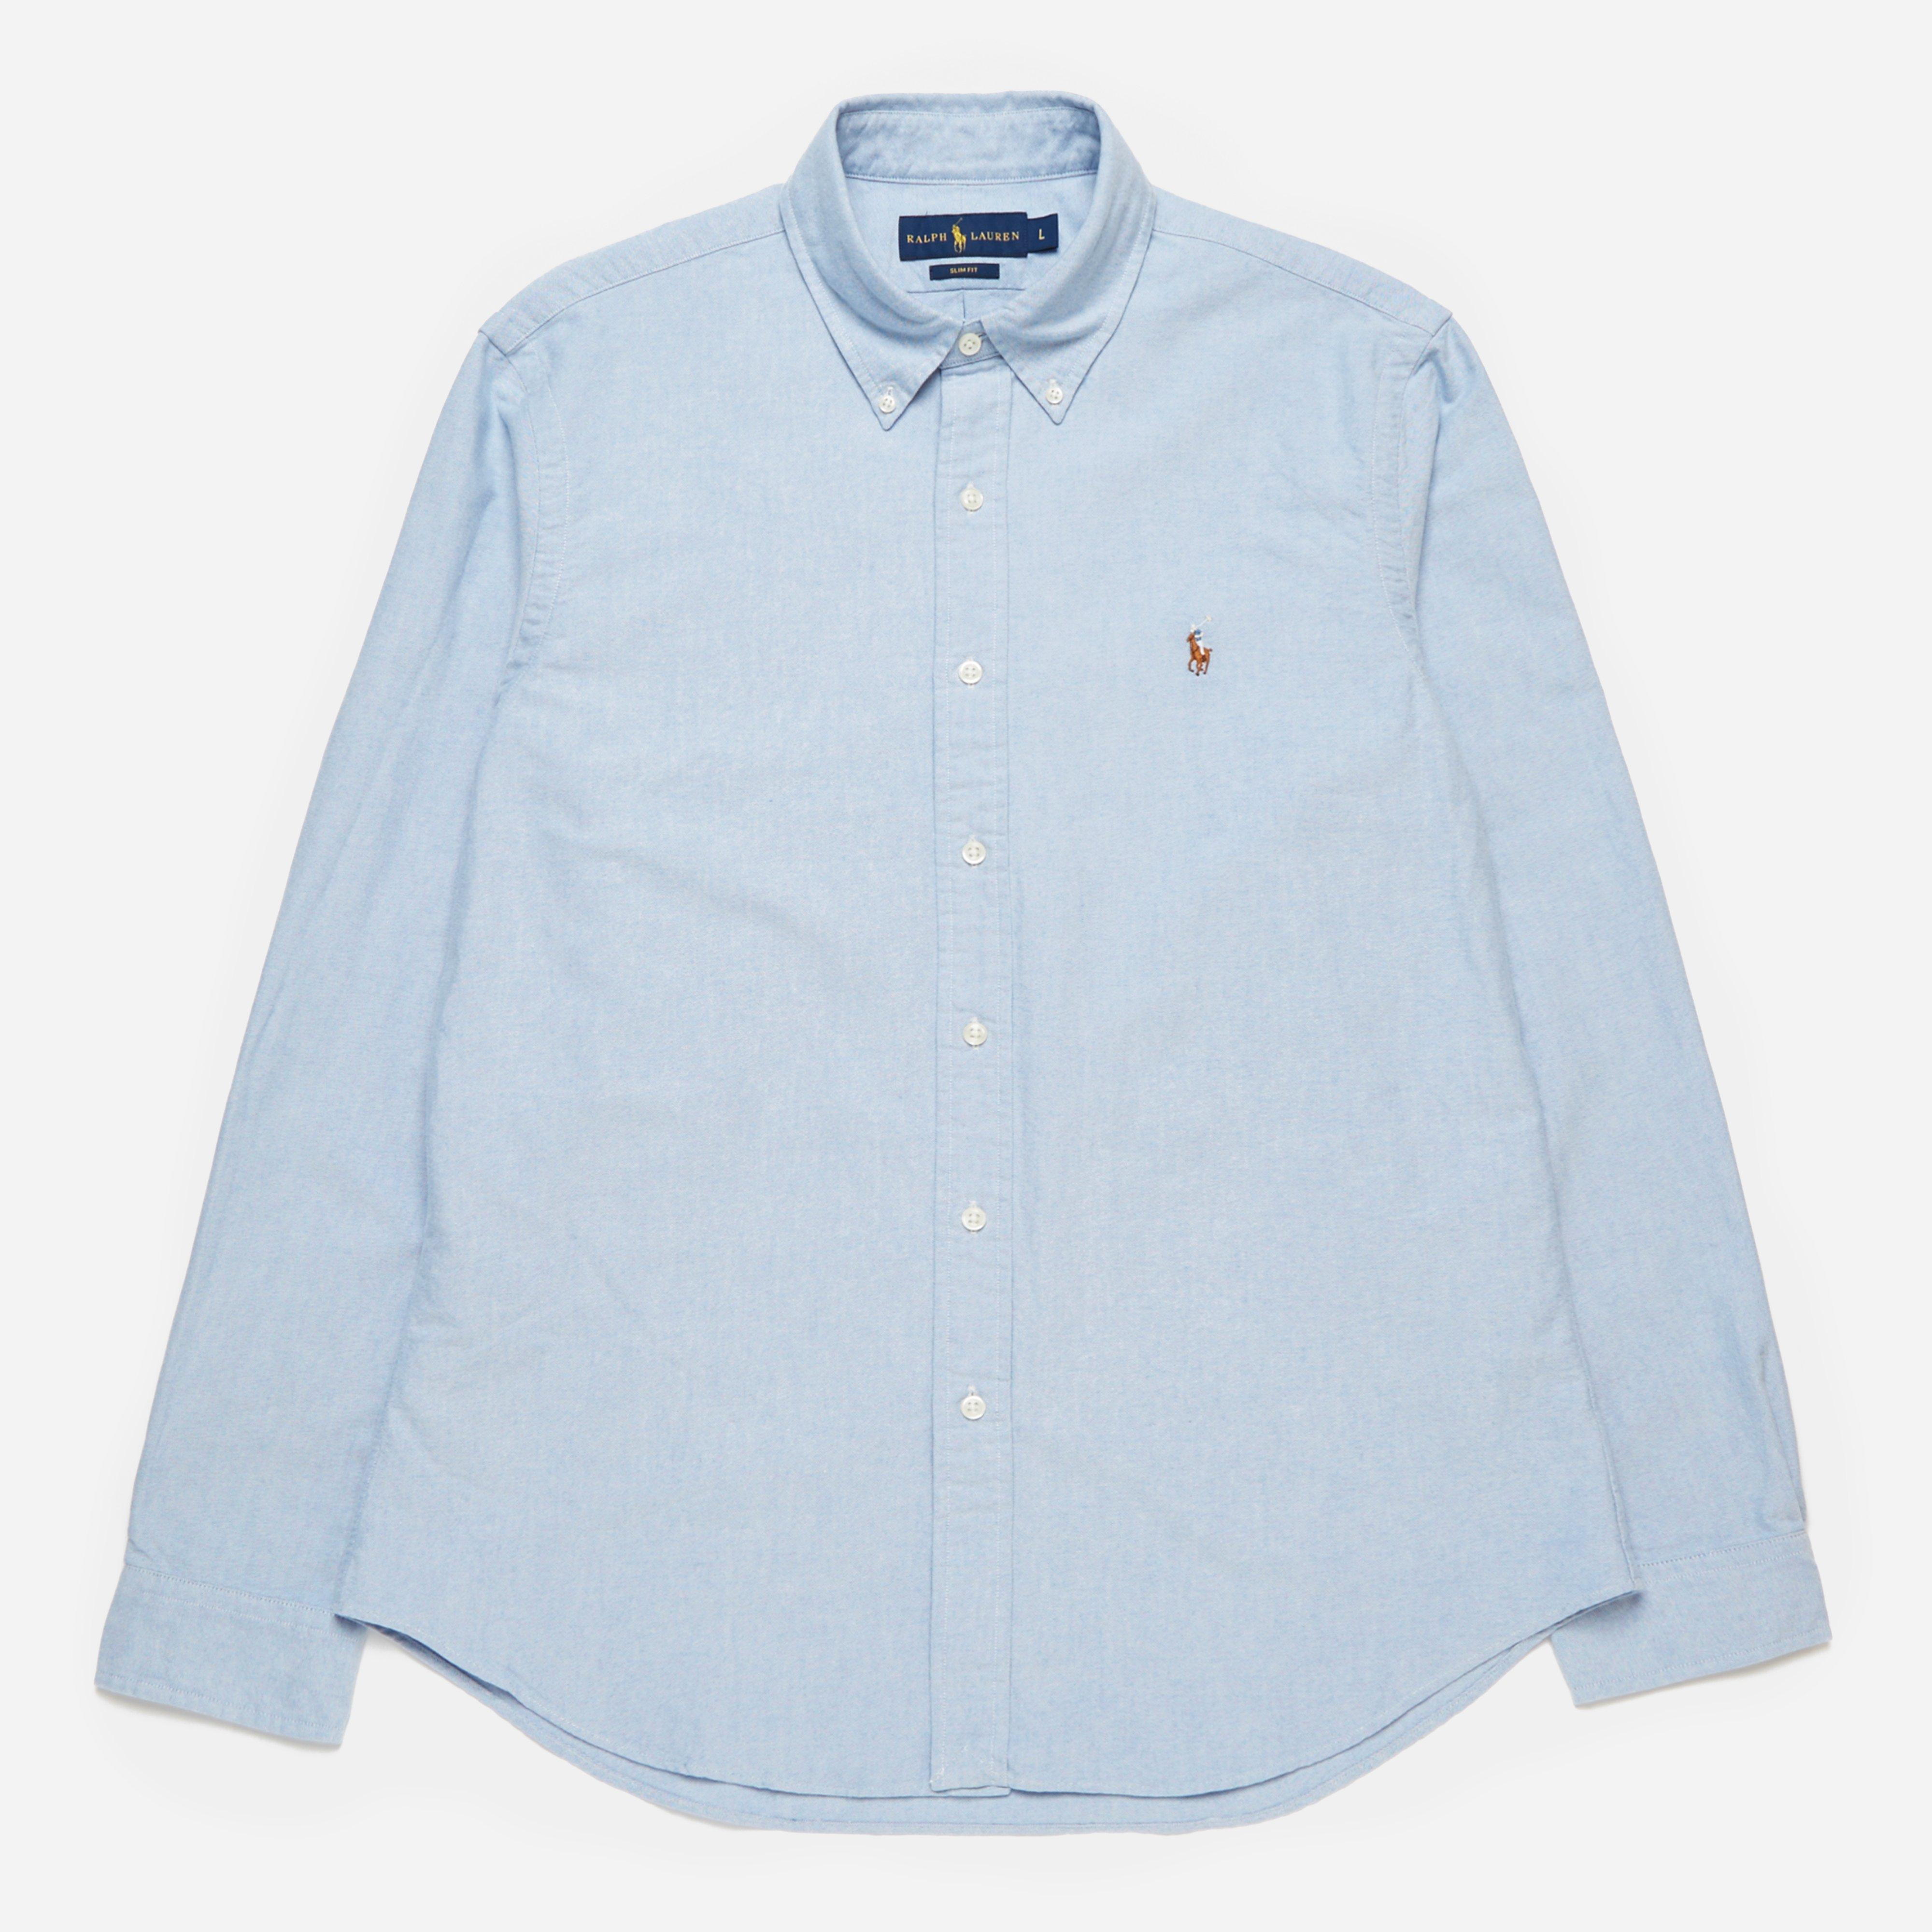 Polo Ralph Lauren Slim Fit Denim BD Shirt